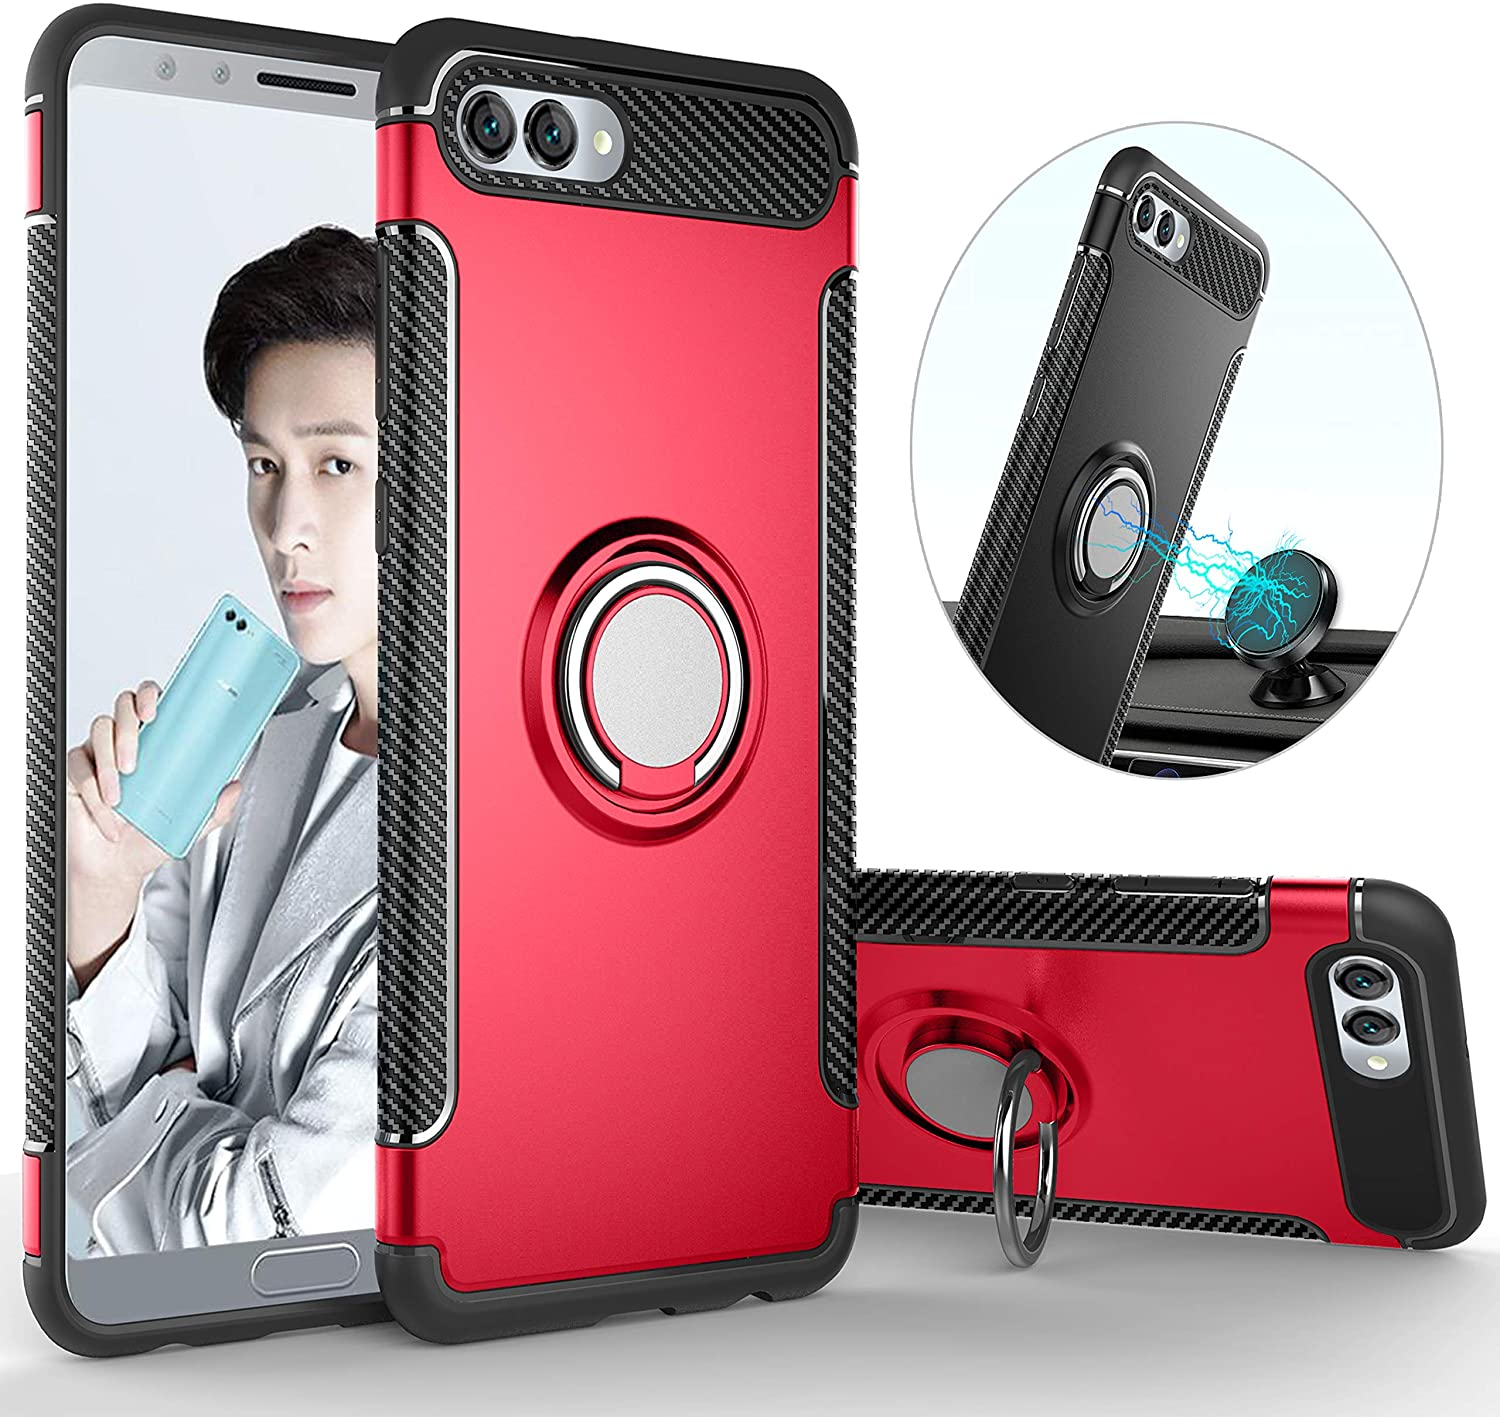 QSEEL for Huawei Honor 10 Ring Armor Case, TPU+PC Hybrid Shockproof Back Cover with Built-in Magnetic Suction Holder, Sturdy Bumper Defender (Red)